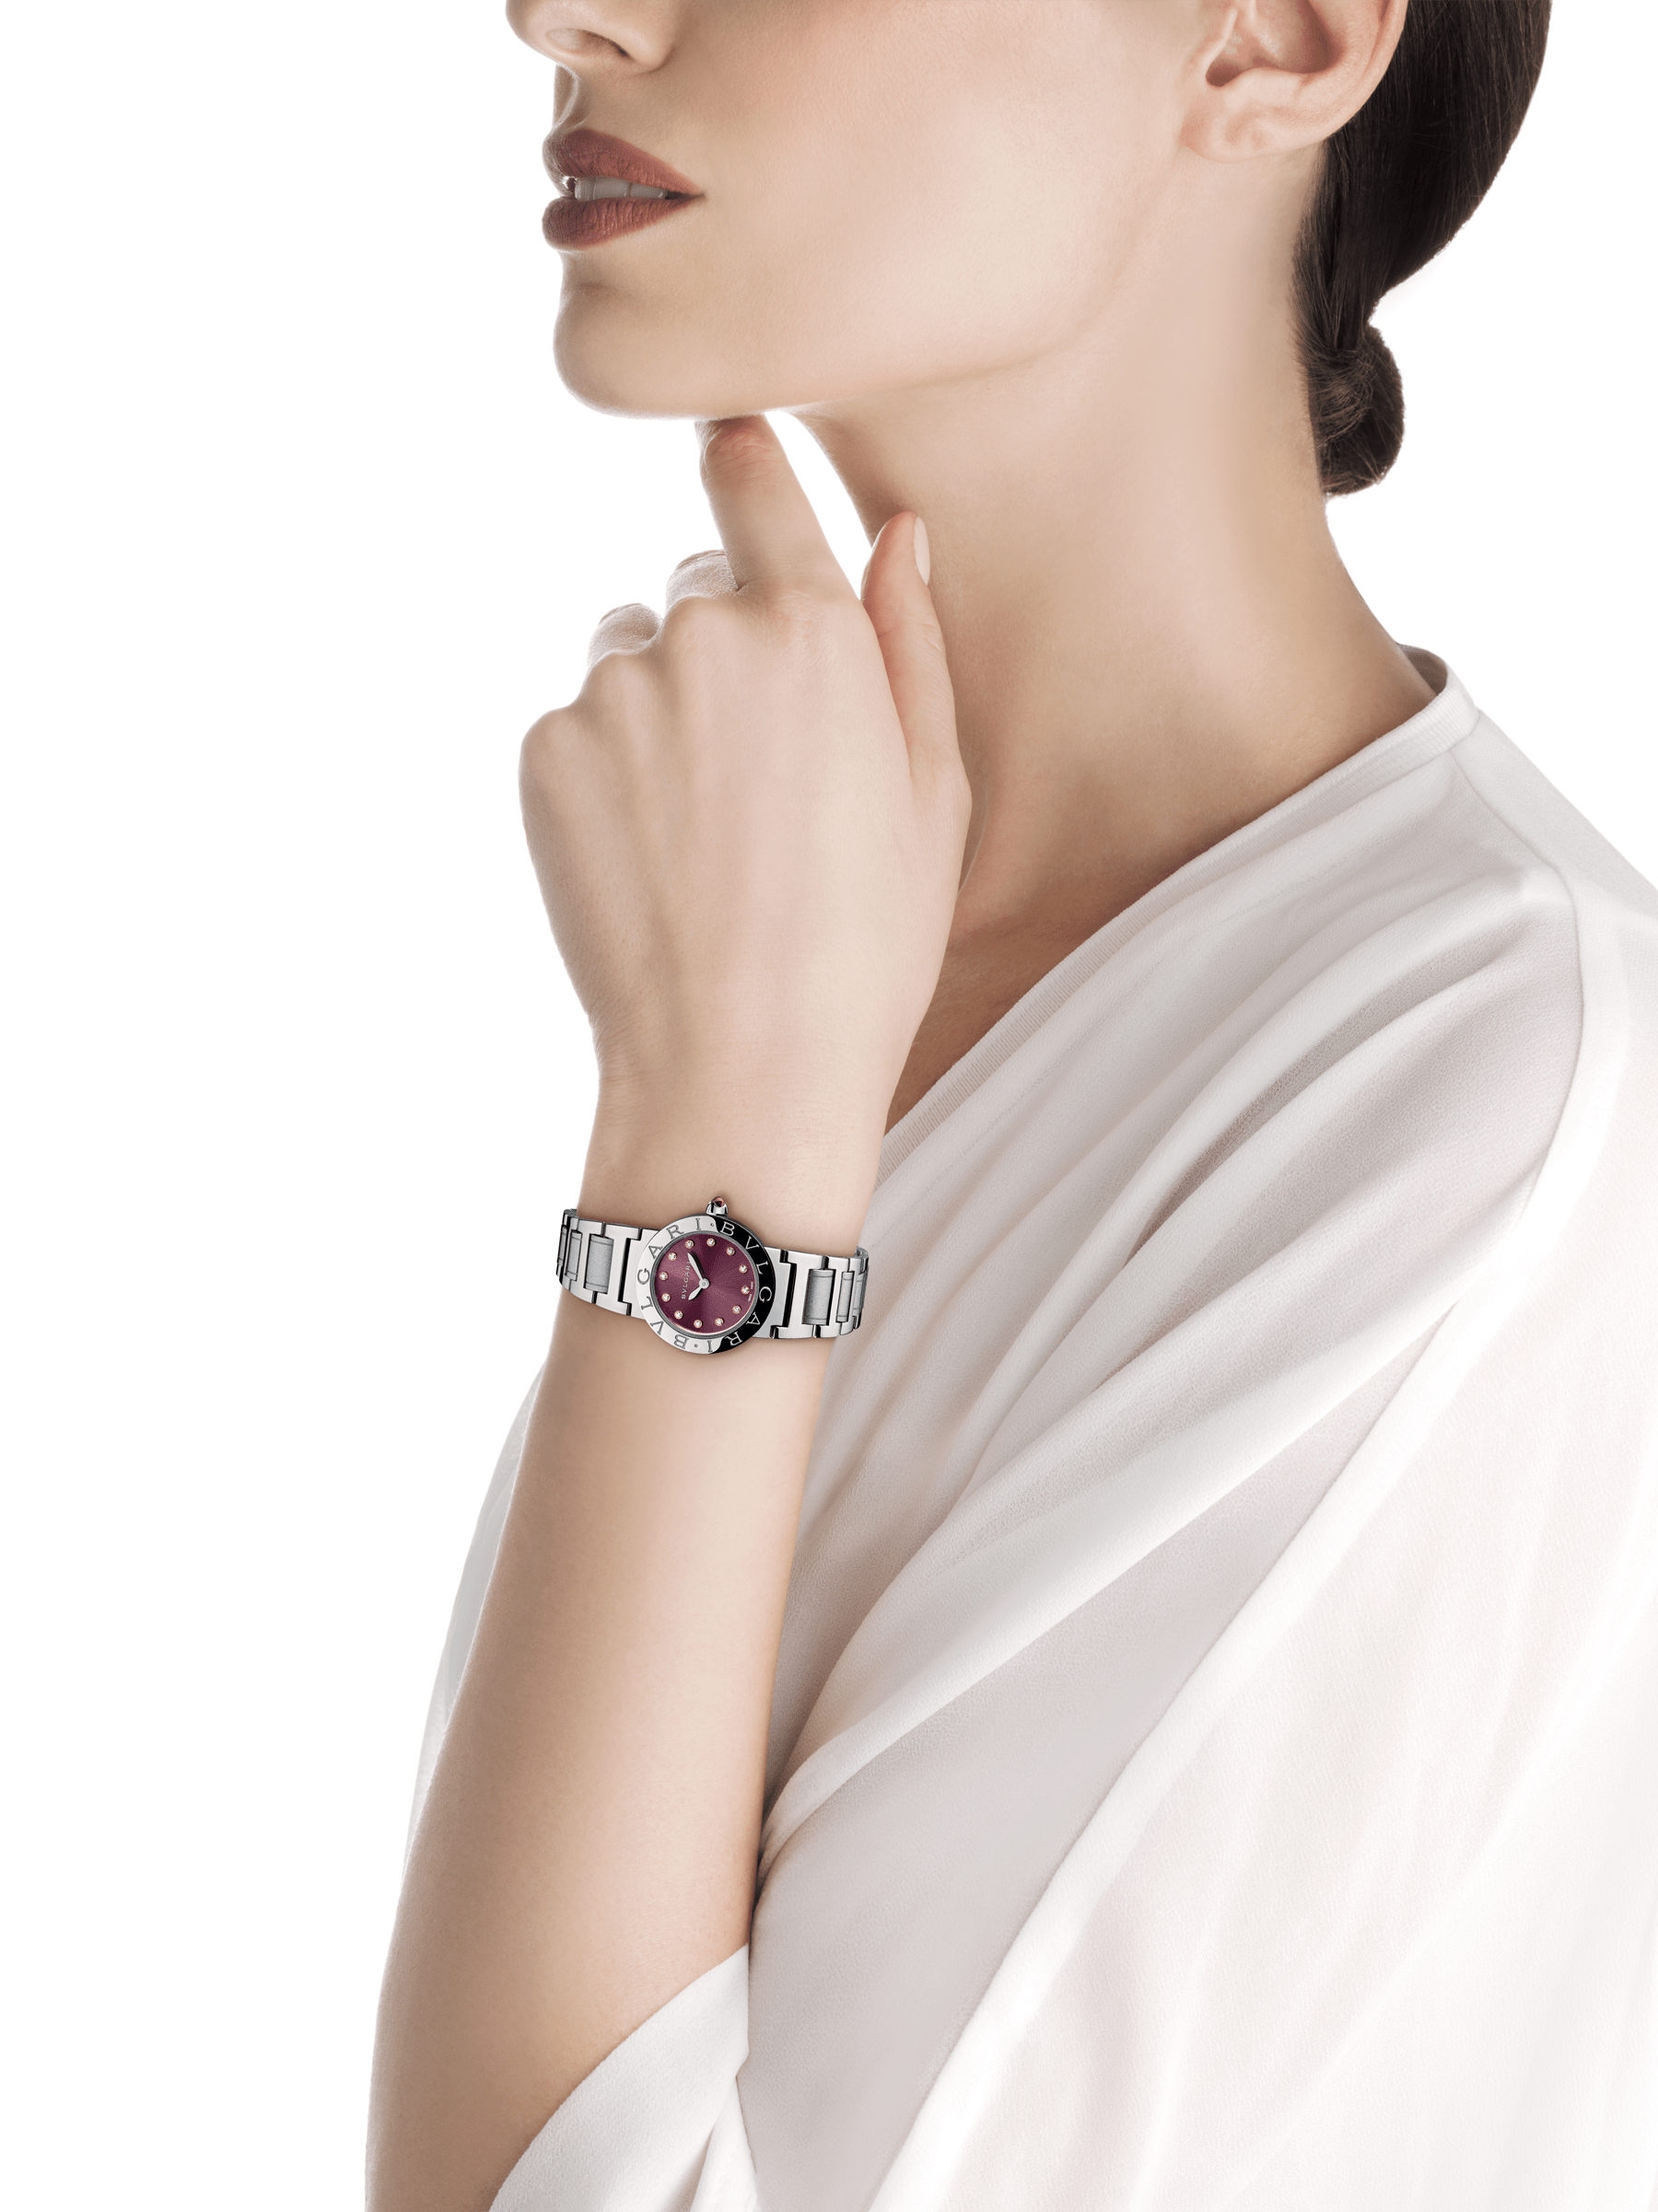 BVLGARI BVLGARI watch in stainless steel case and bracelet, with purple satiné soleil lacquered dial and diamond indexes 102606 image 4